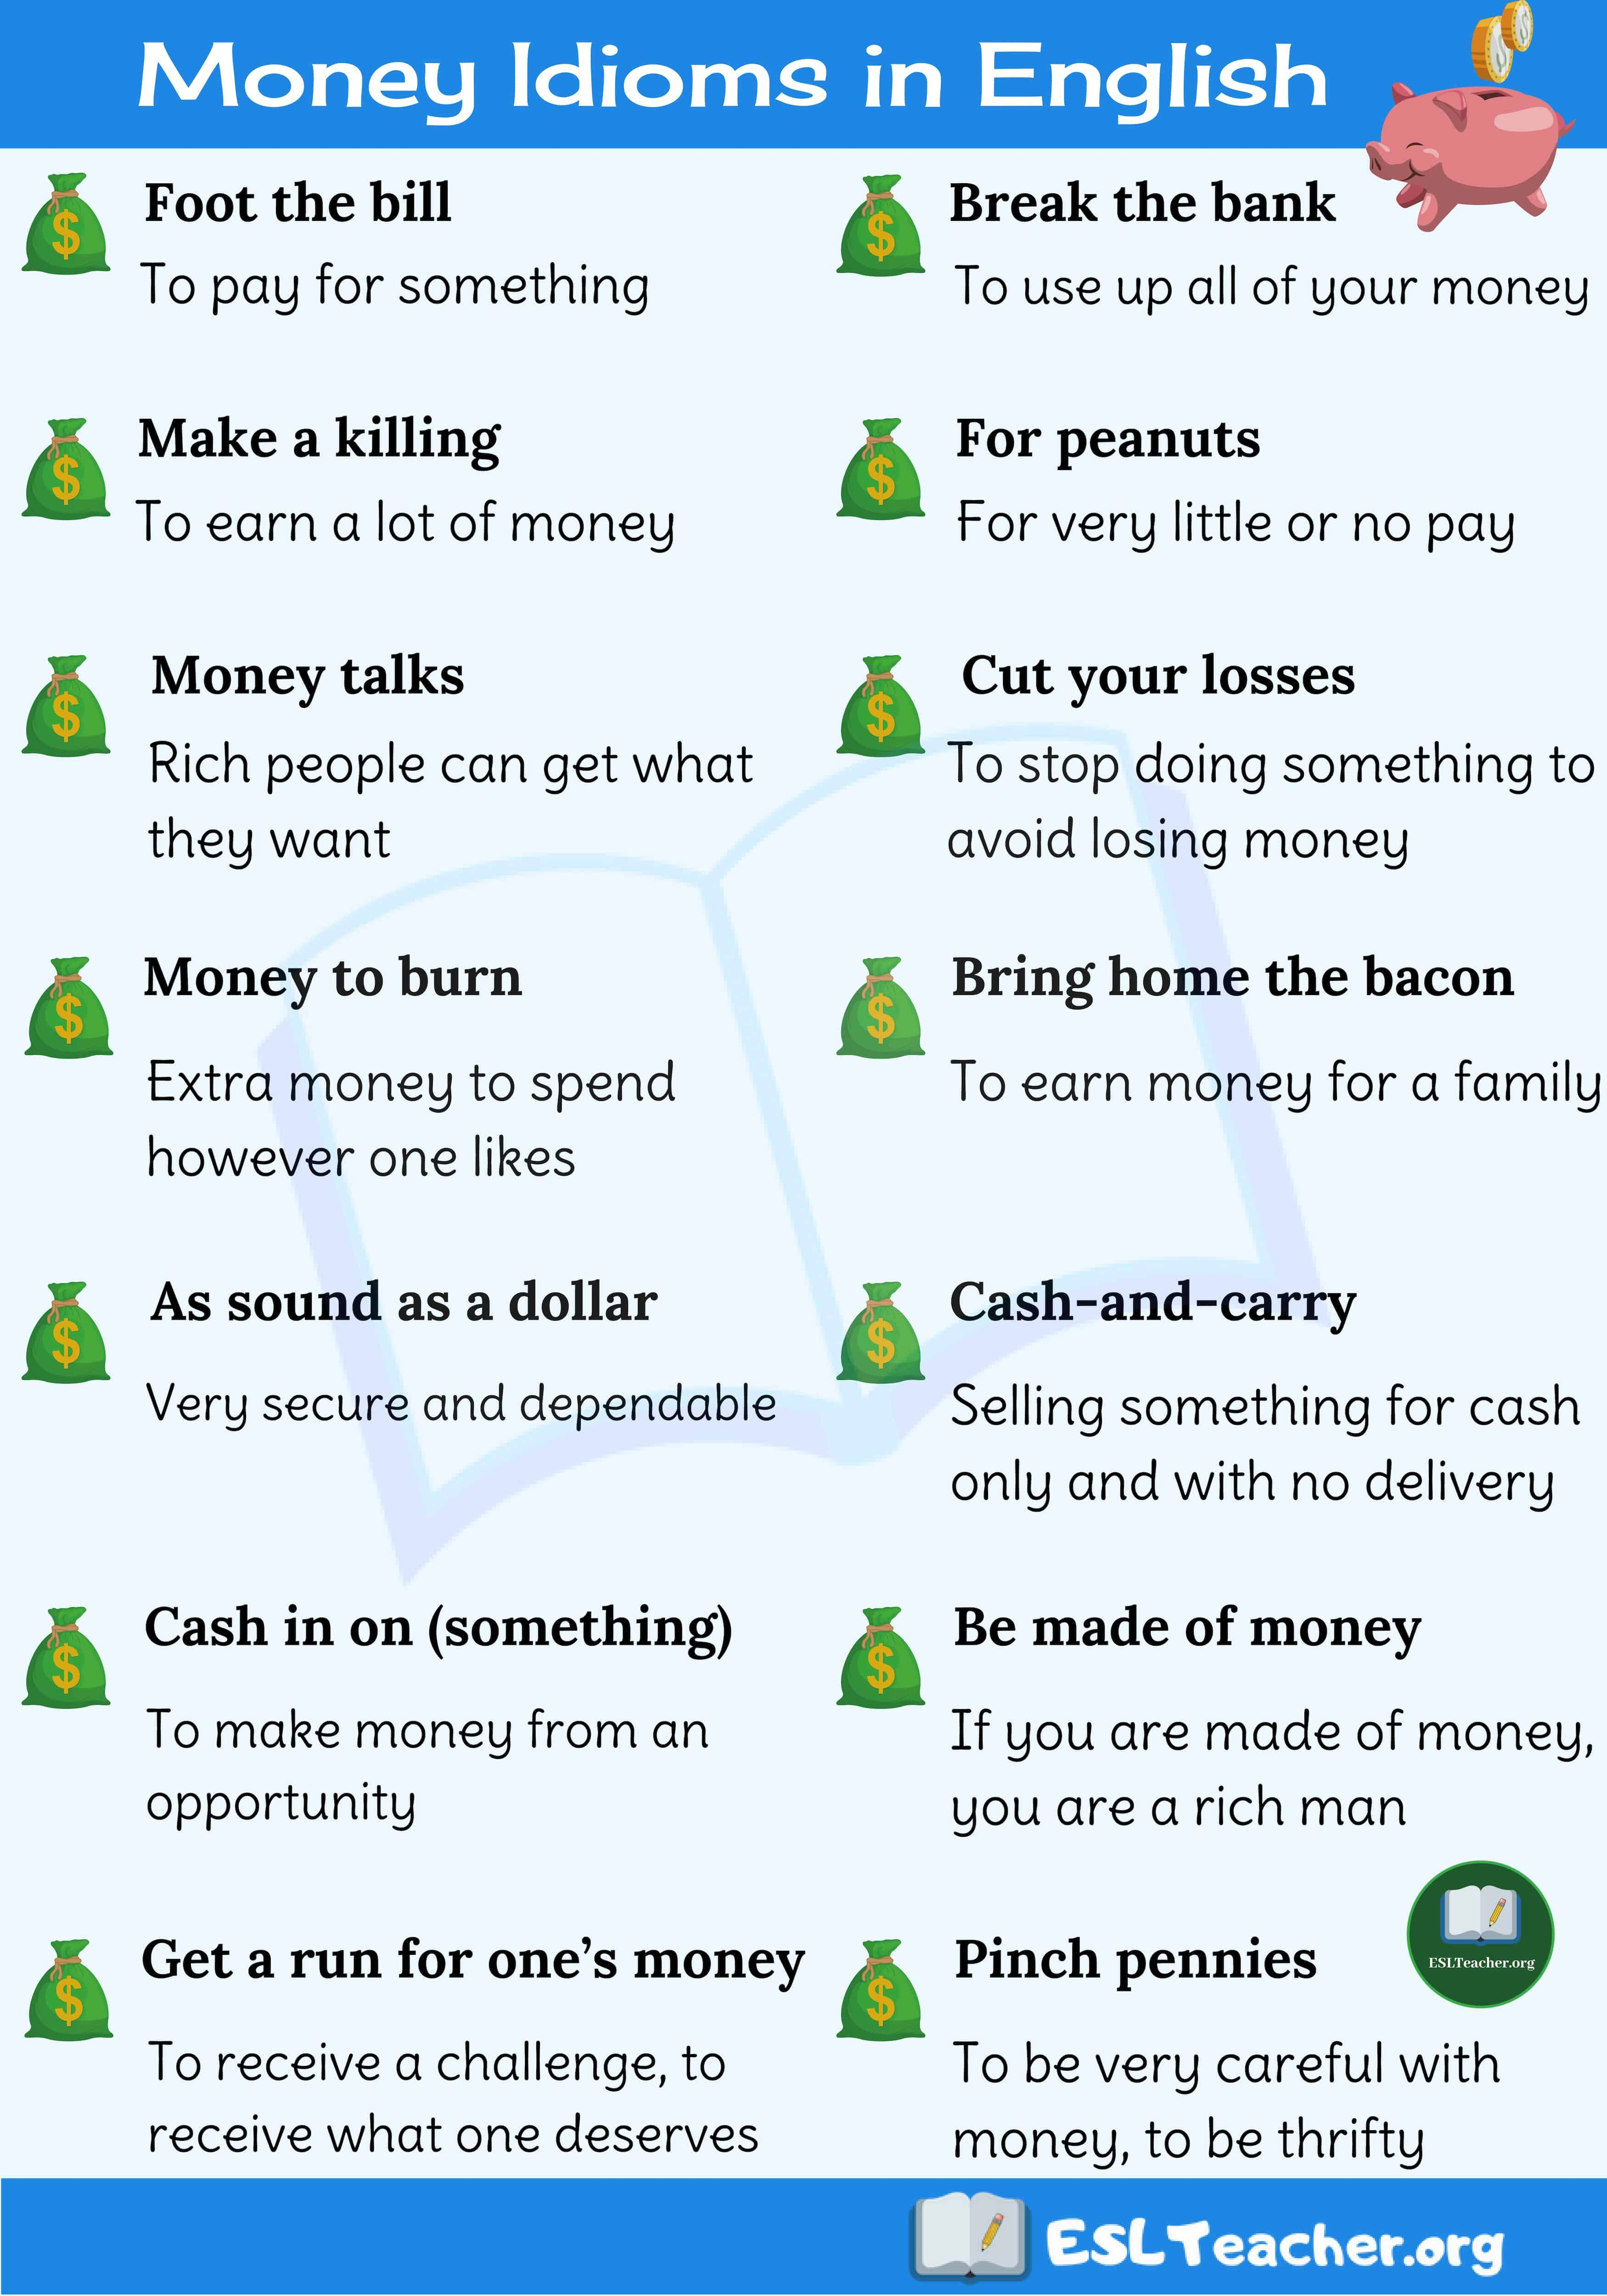 Pin By At Home With Lauren B Montana On My Saves In 2021 Idioms And Phrases English Idioms Idioms